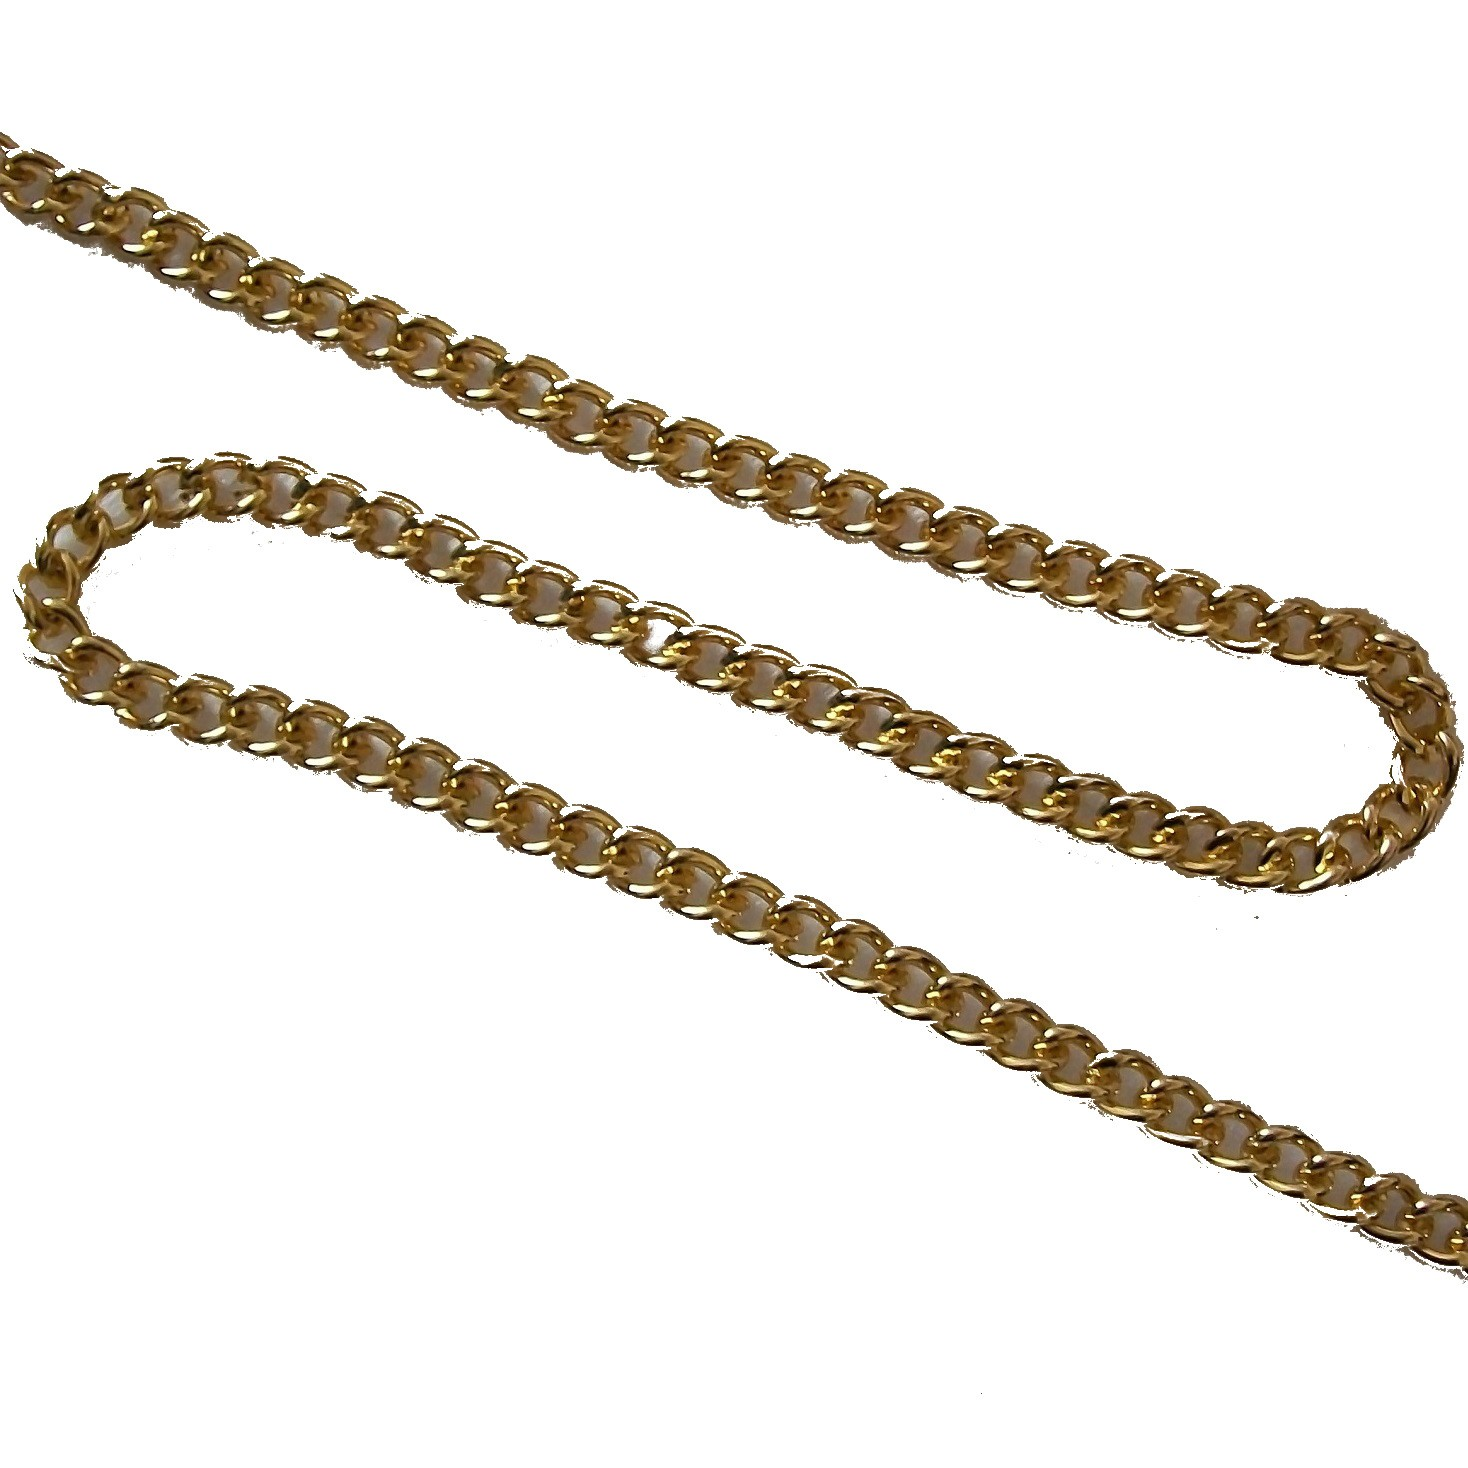 Decorative Metal Chain 5mm Wide Gold 2 Metres